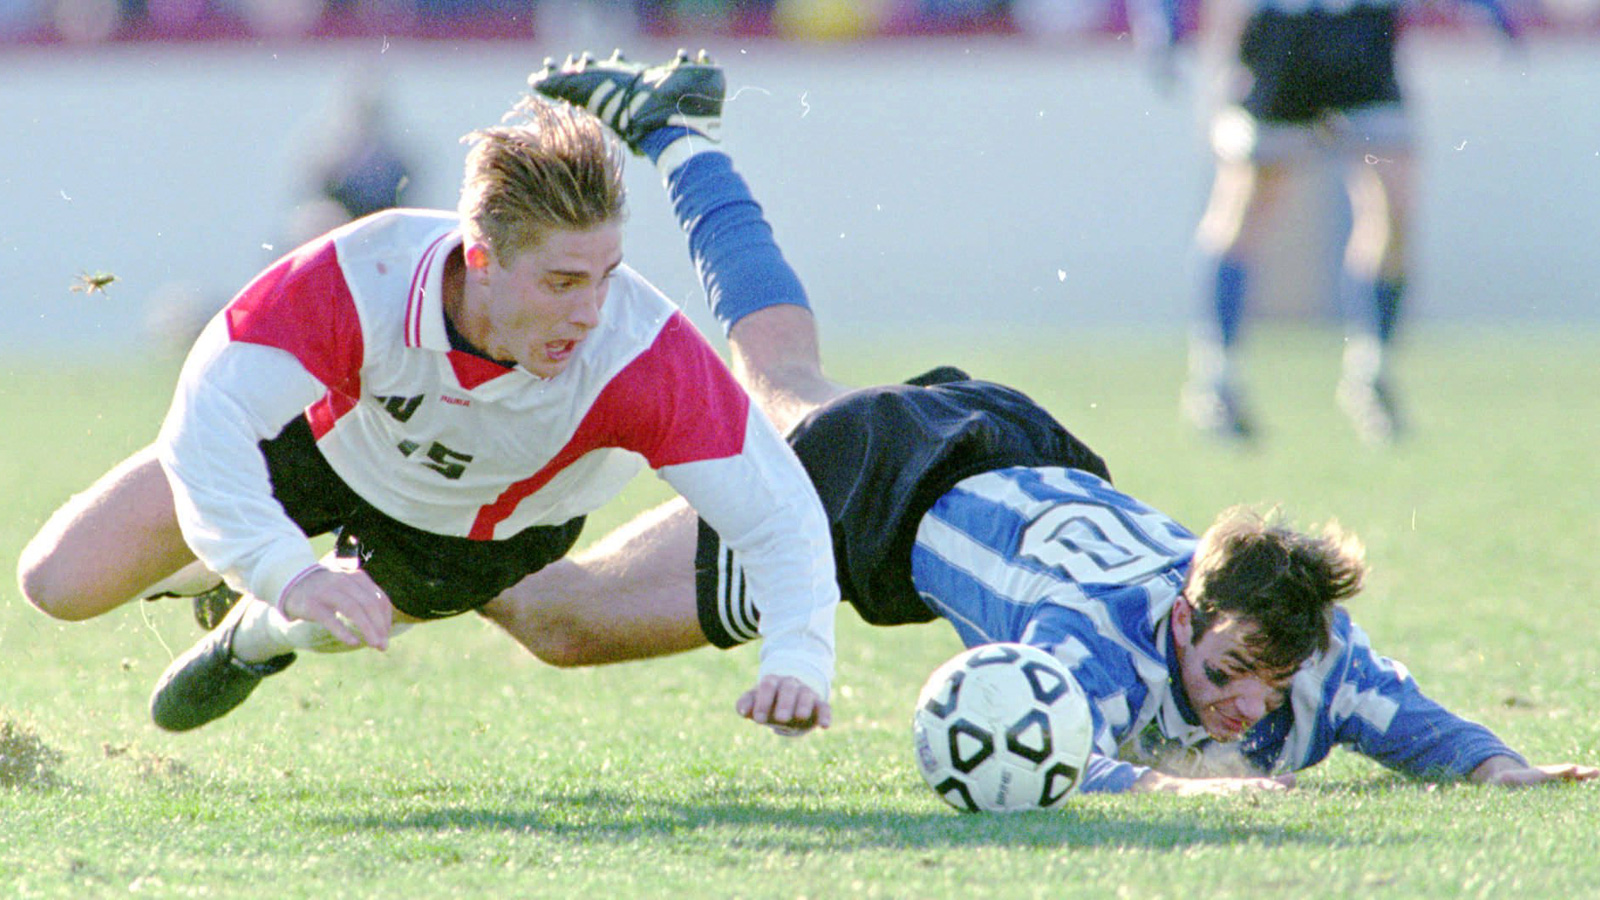 Duke defender Sam Smith (right hits the ground along with Wisconsin midfielder Shea Huston during the first half.